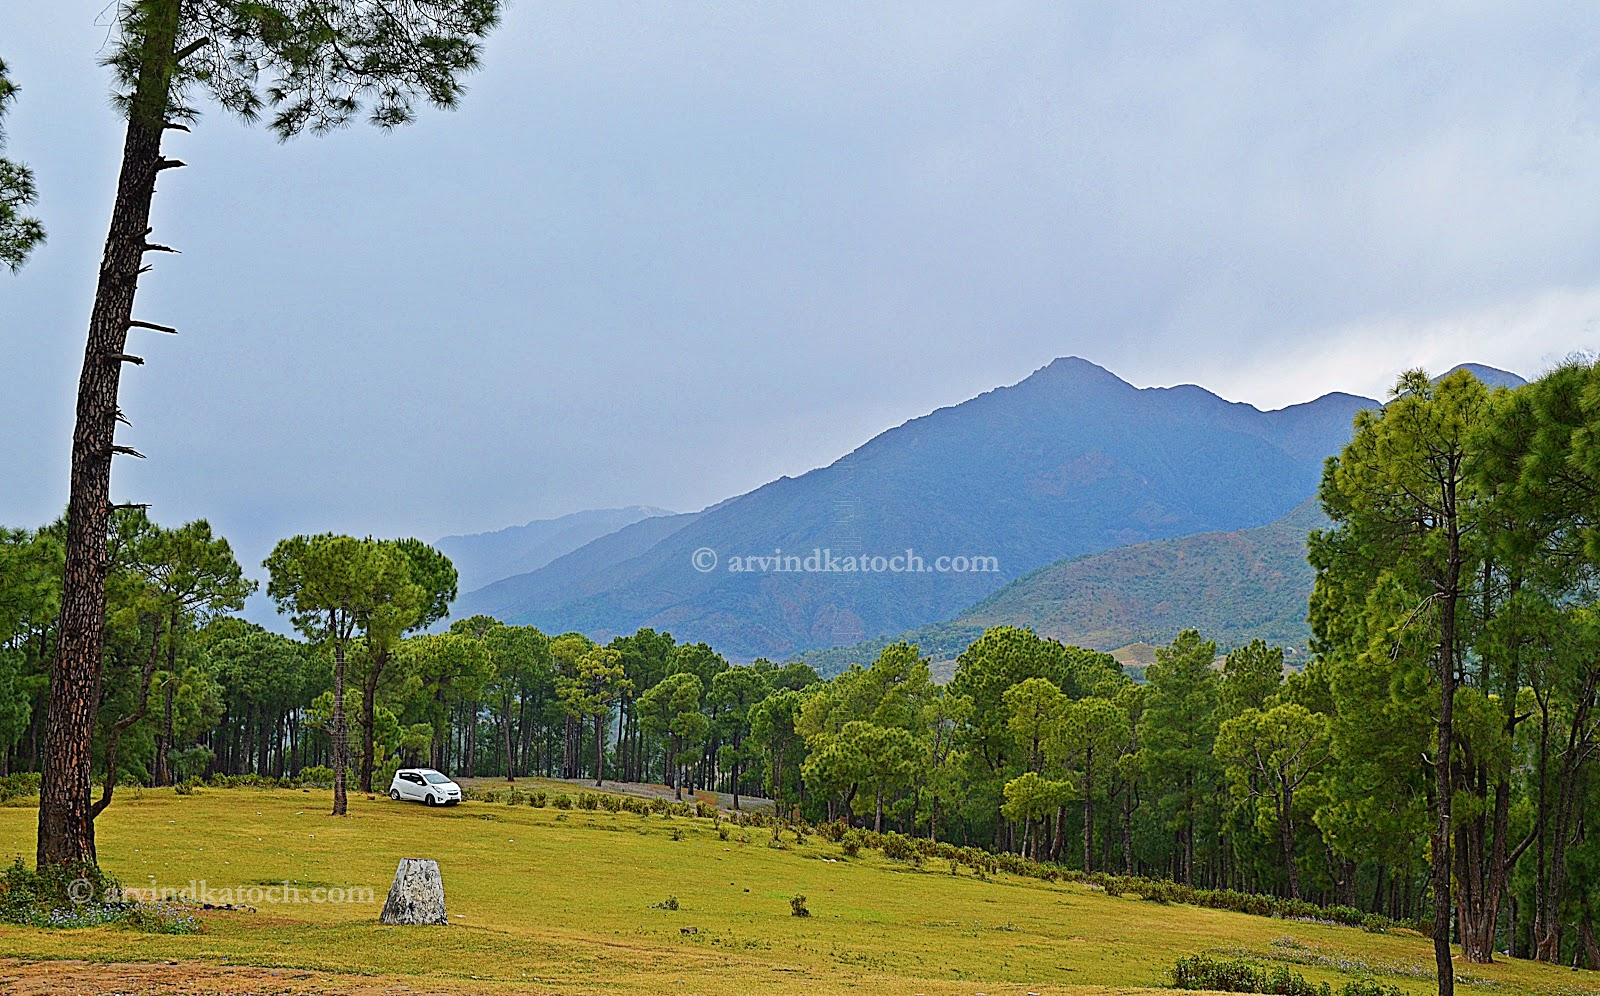 Hd Wall Of Humachal: HD Picture (Wallpaper) Of Beautiful Kangra (Himachal